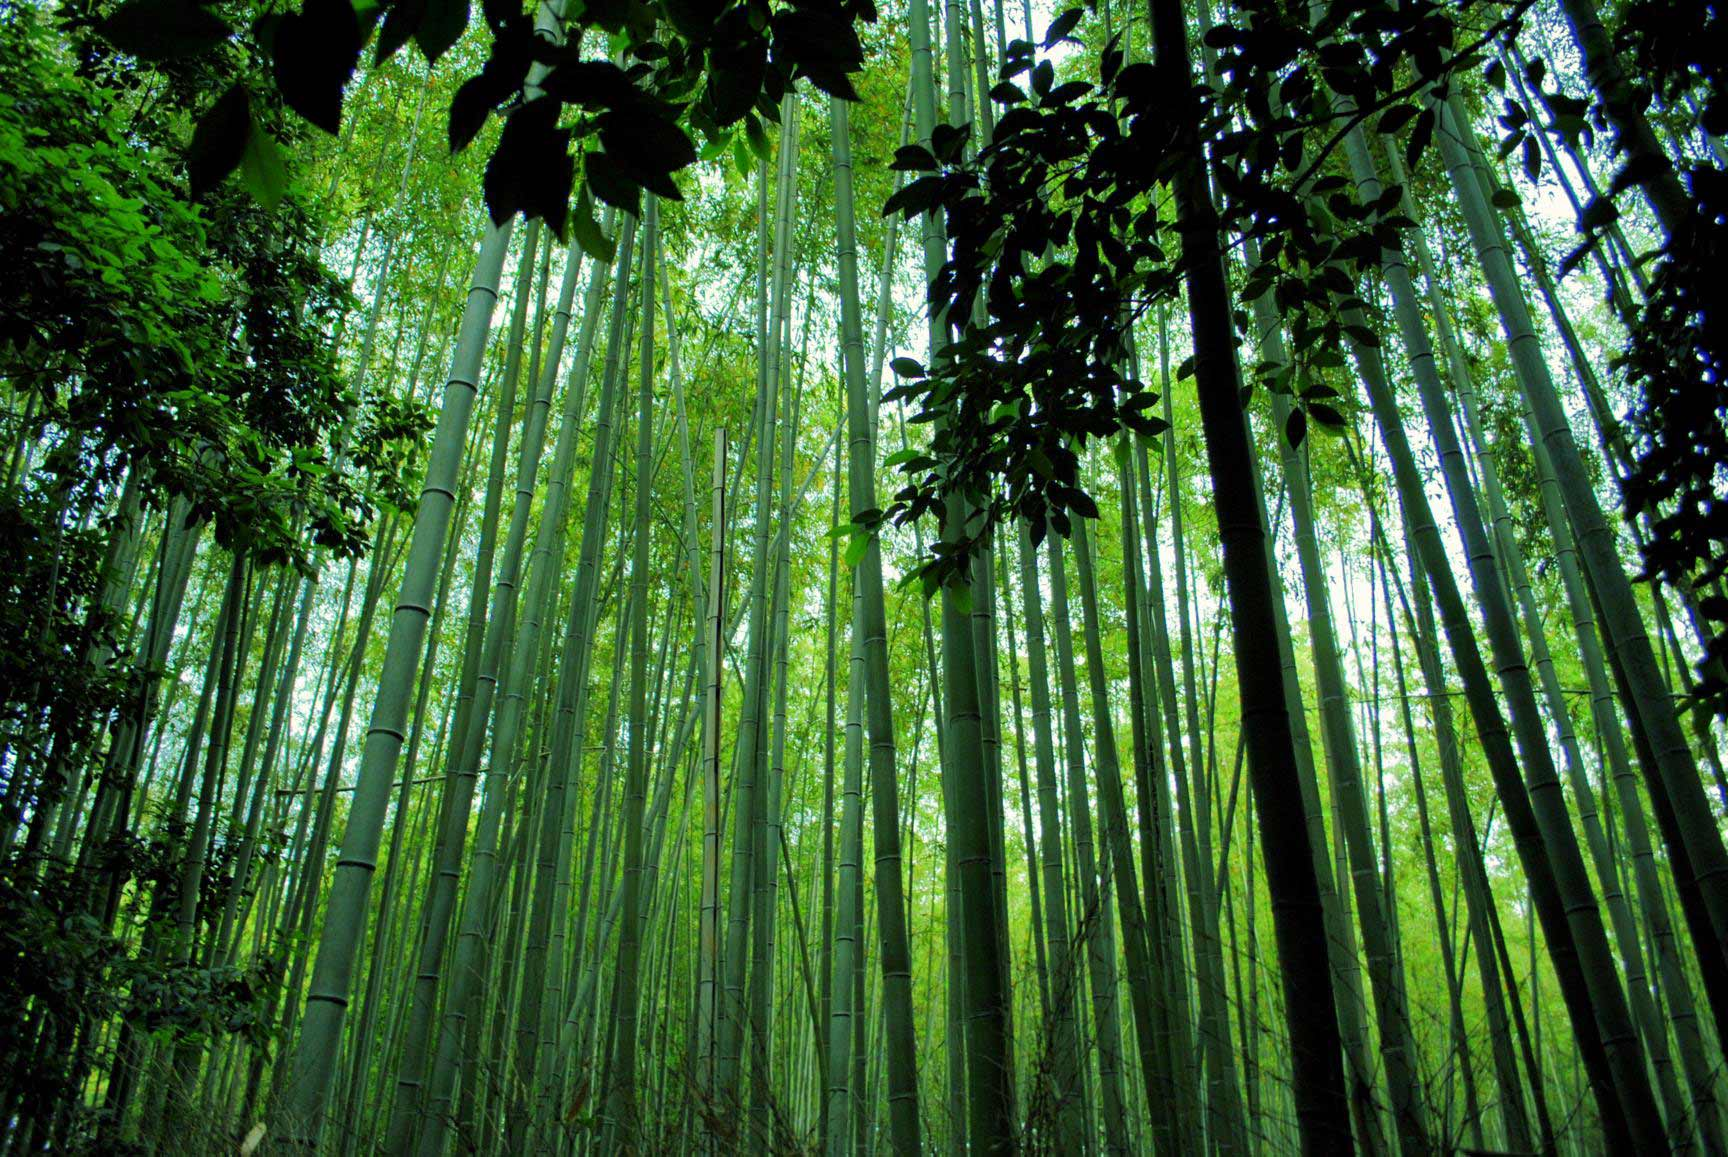 bosque-bambues-arashiyama-1